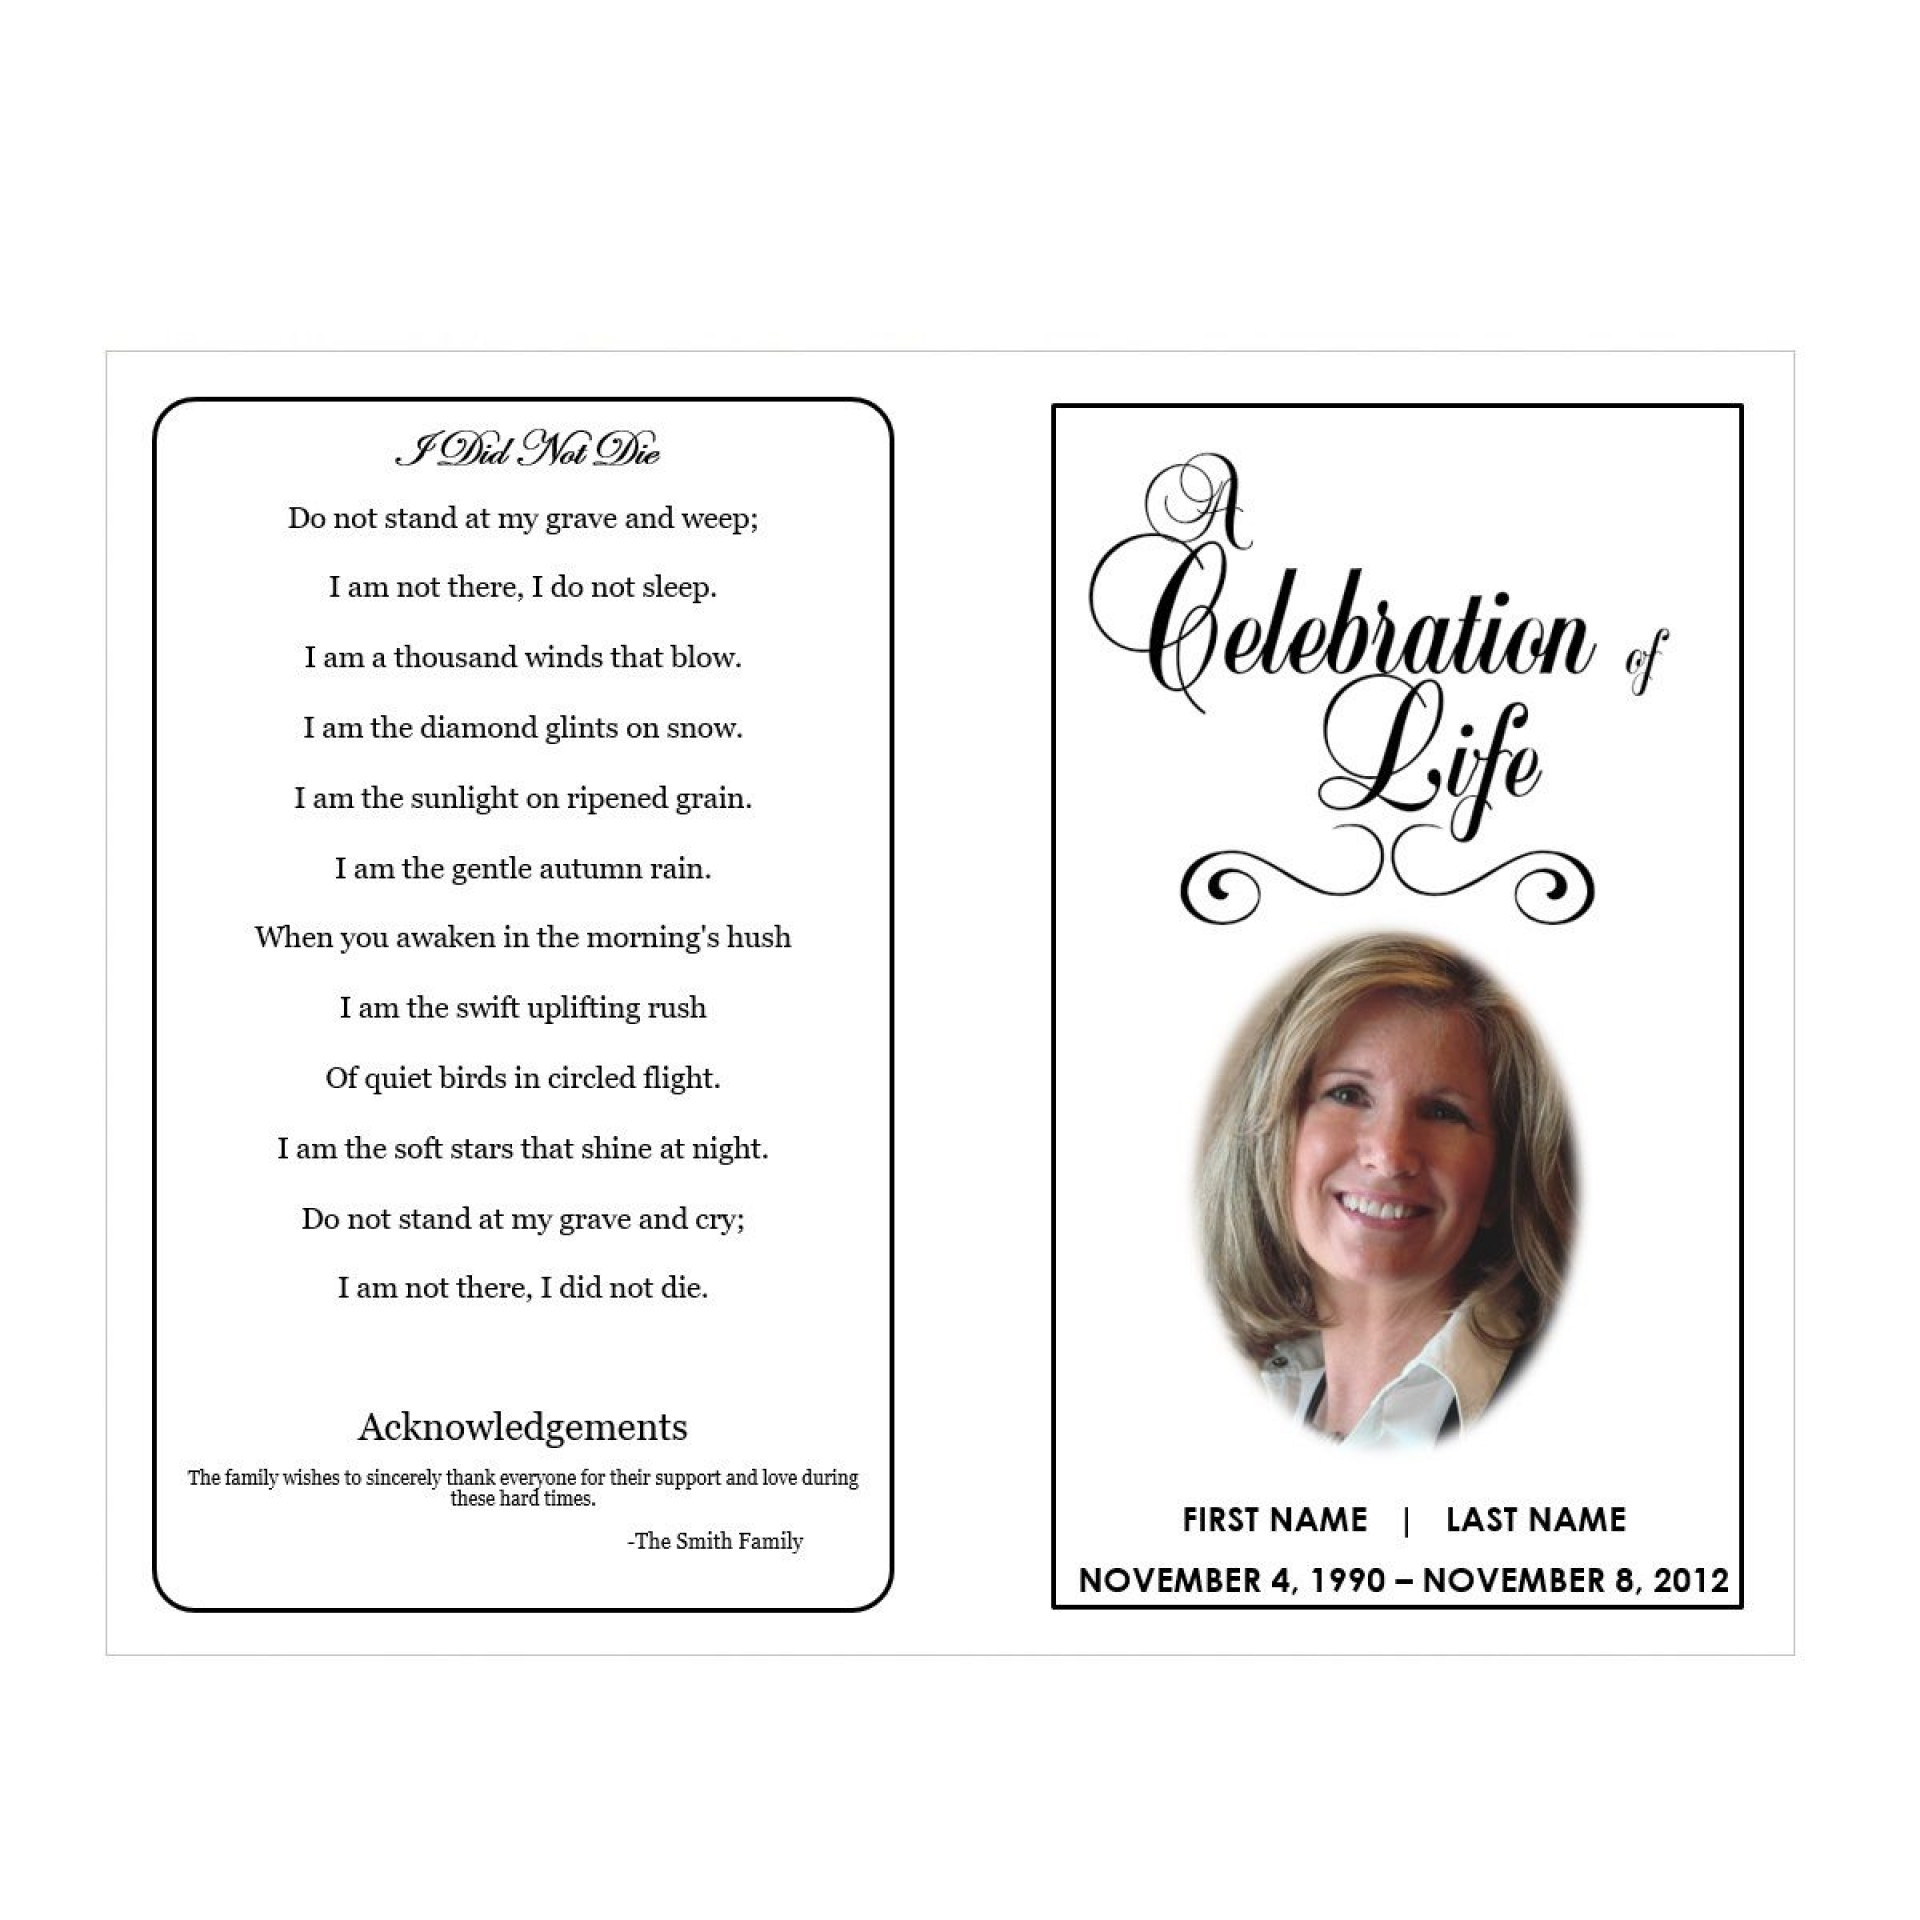 008 Frightening Celebration Of Life Template Idea  Powerpoint Program Download Announcement Free1920